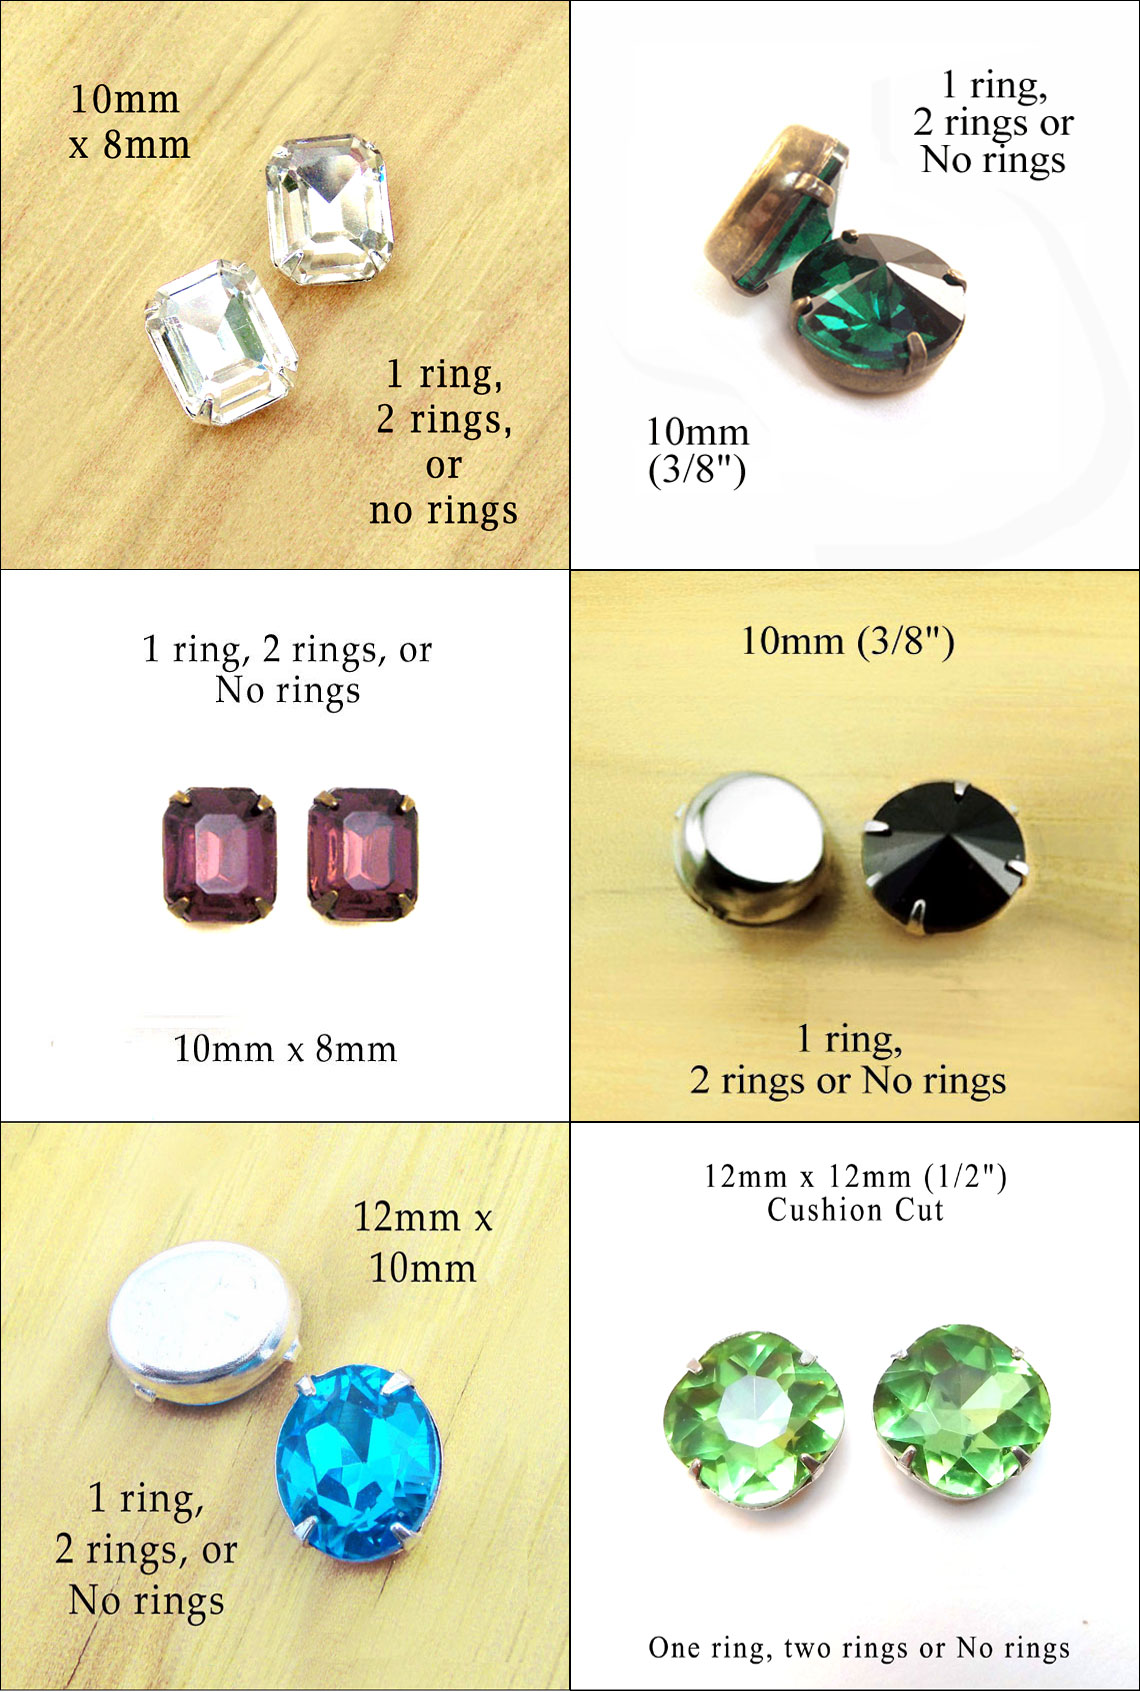 glass jewels in no ring settings...great for button and stud earrings